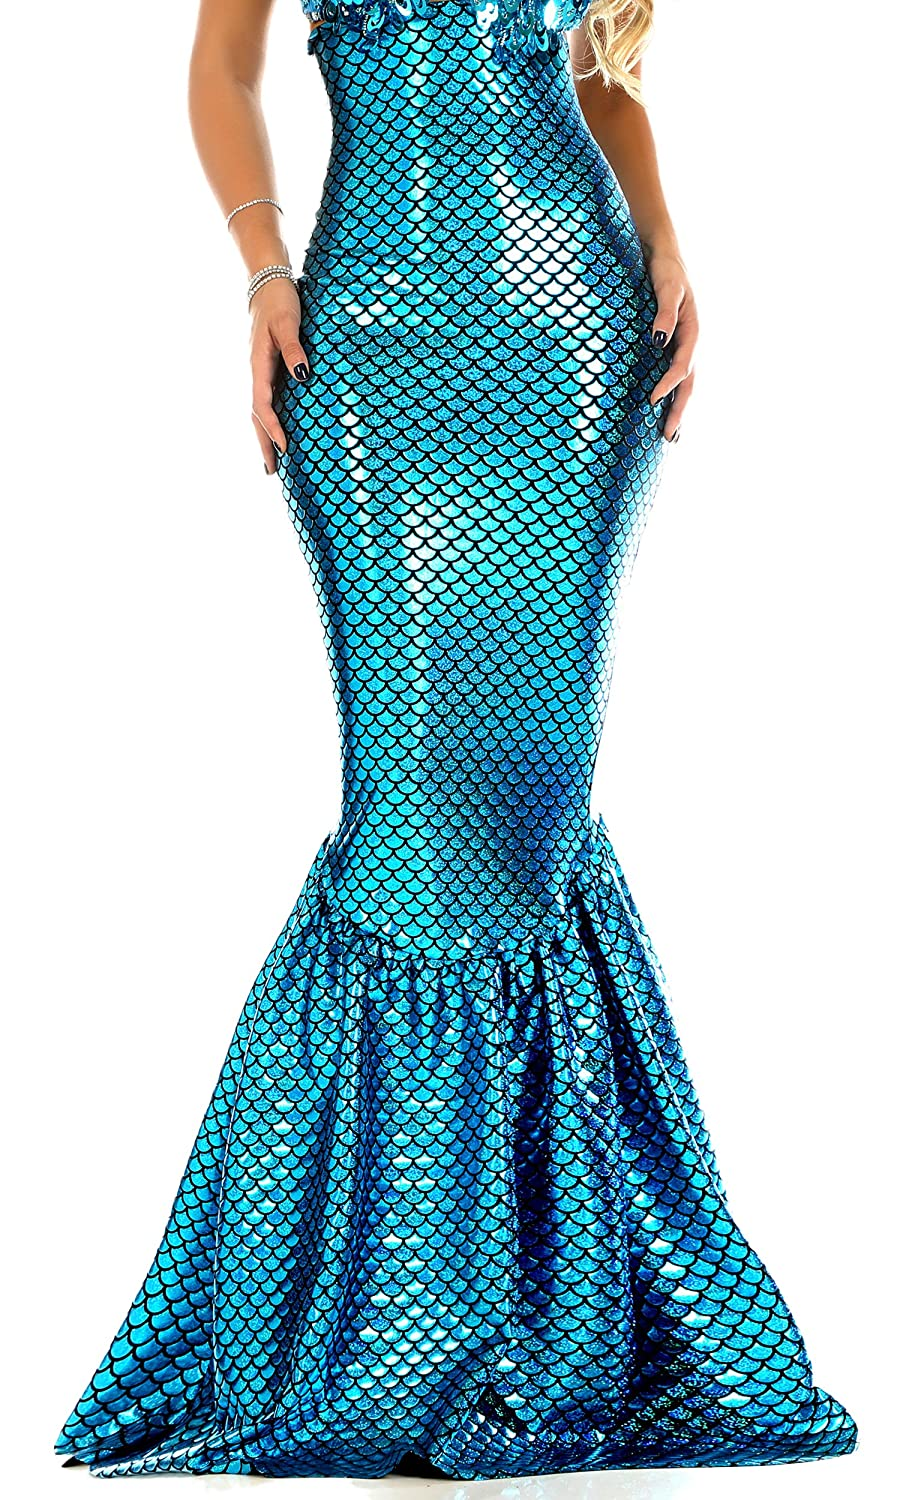 Women's High-Waisted Hologram Finish Turquoise Mermaid Skirt - DeluxeAdultCostumes.com